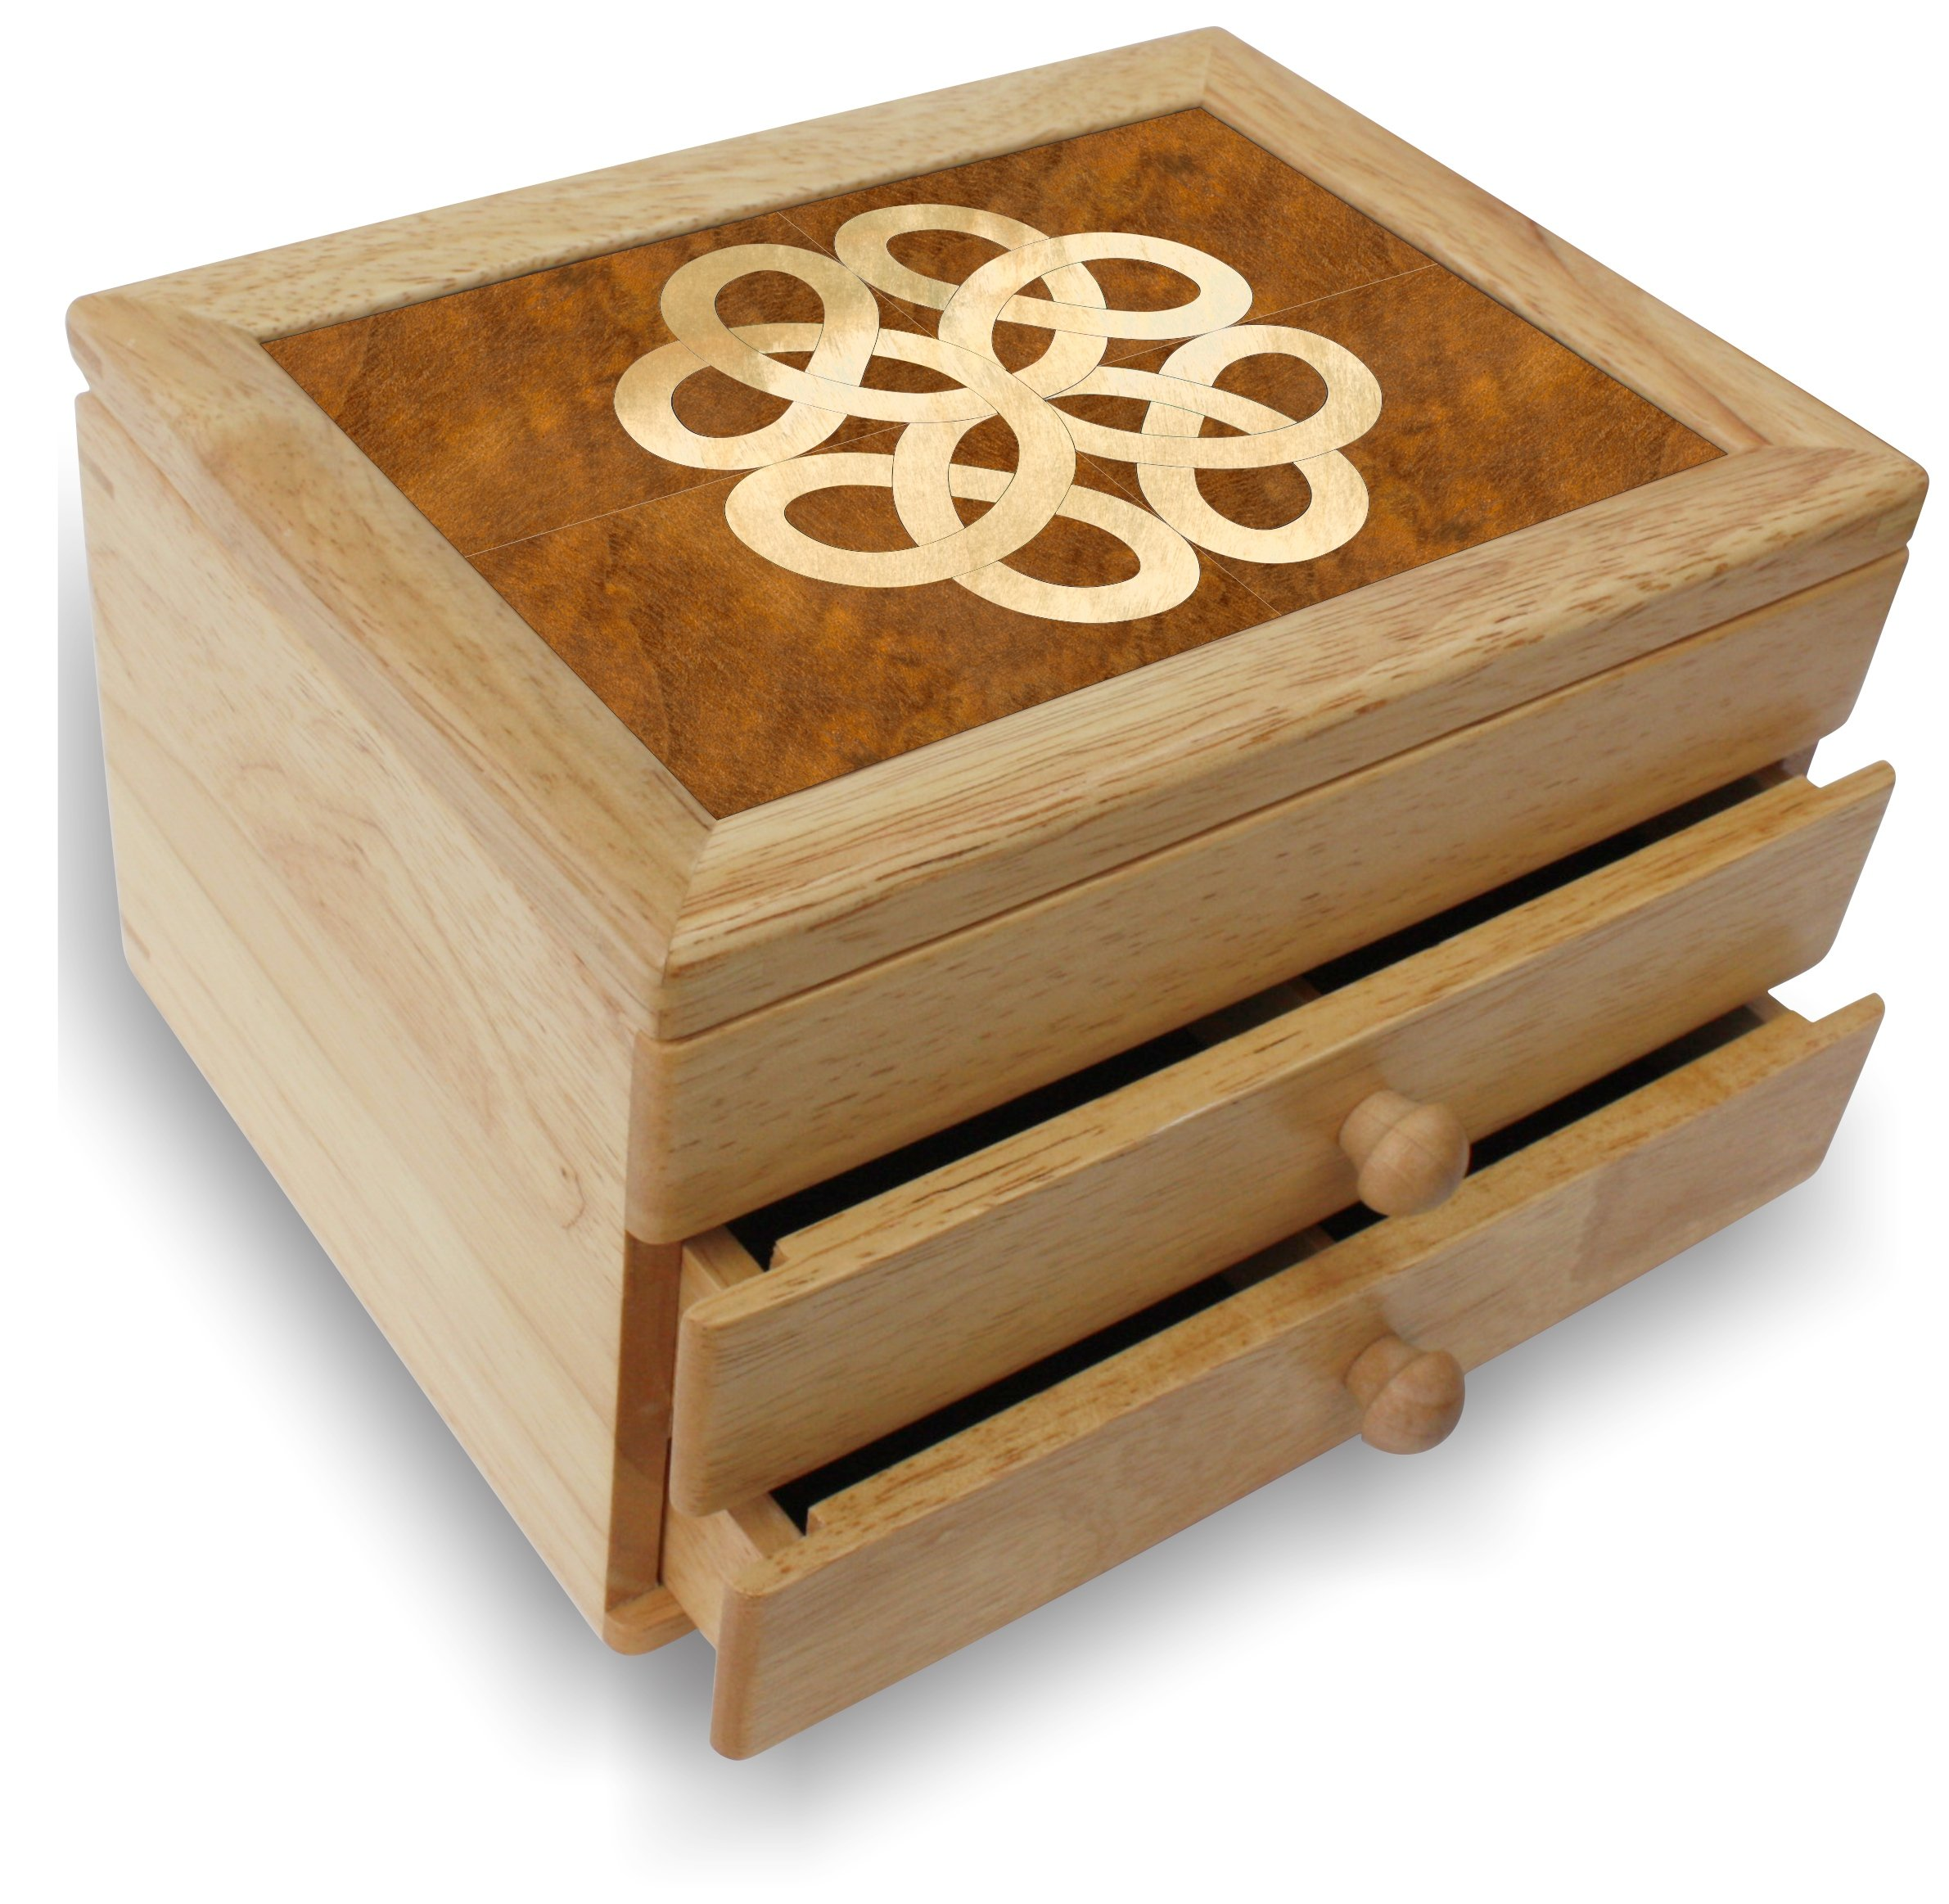 Wood Art Celtic Box - Handmade USA - Unmatched Quality - Unique, No Two are the Same - Original Work of Wood Art. A Celtic Gift, Ring, Trinket or Wood Jewelry Box (#6852 Celtic 2 Drawer) by MarqART (Image #1)